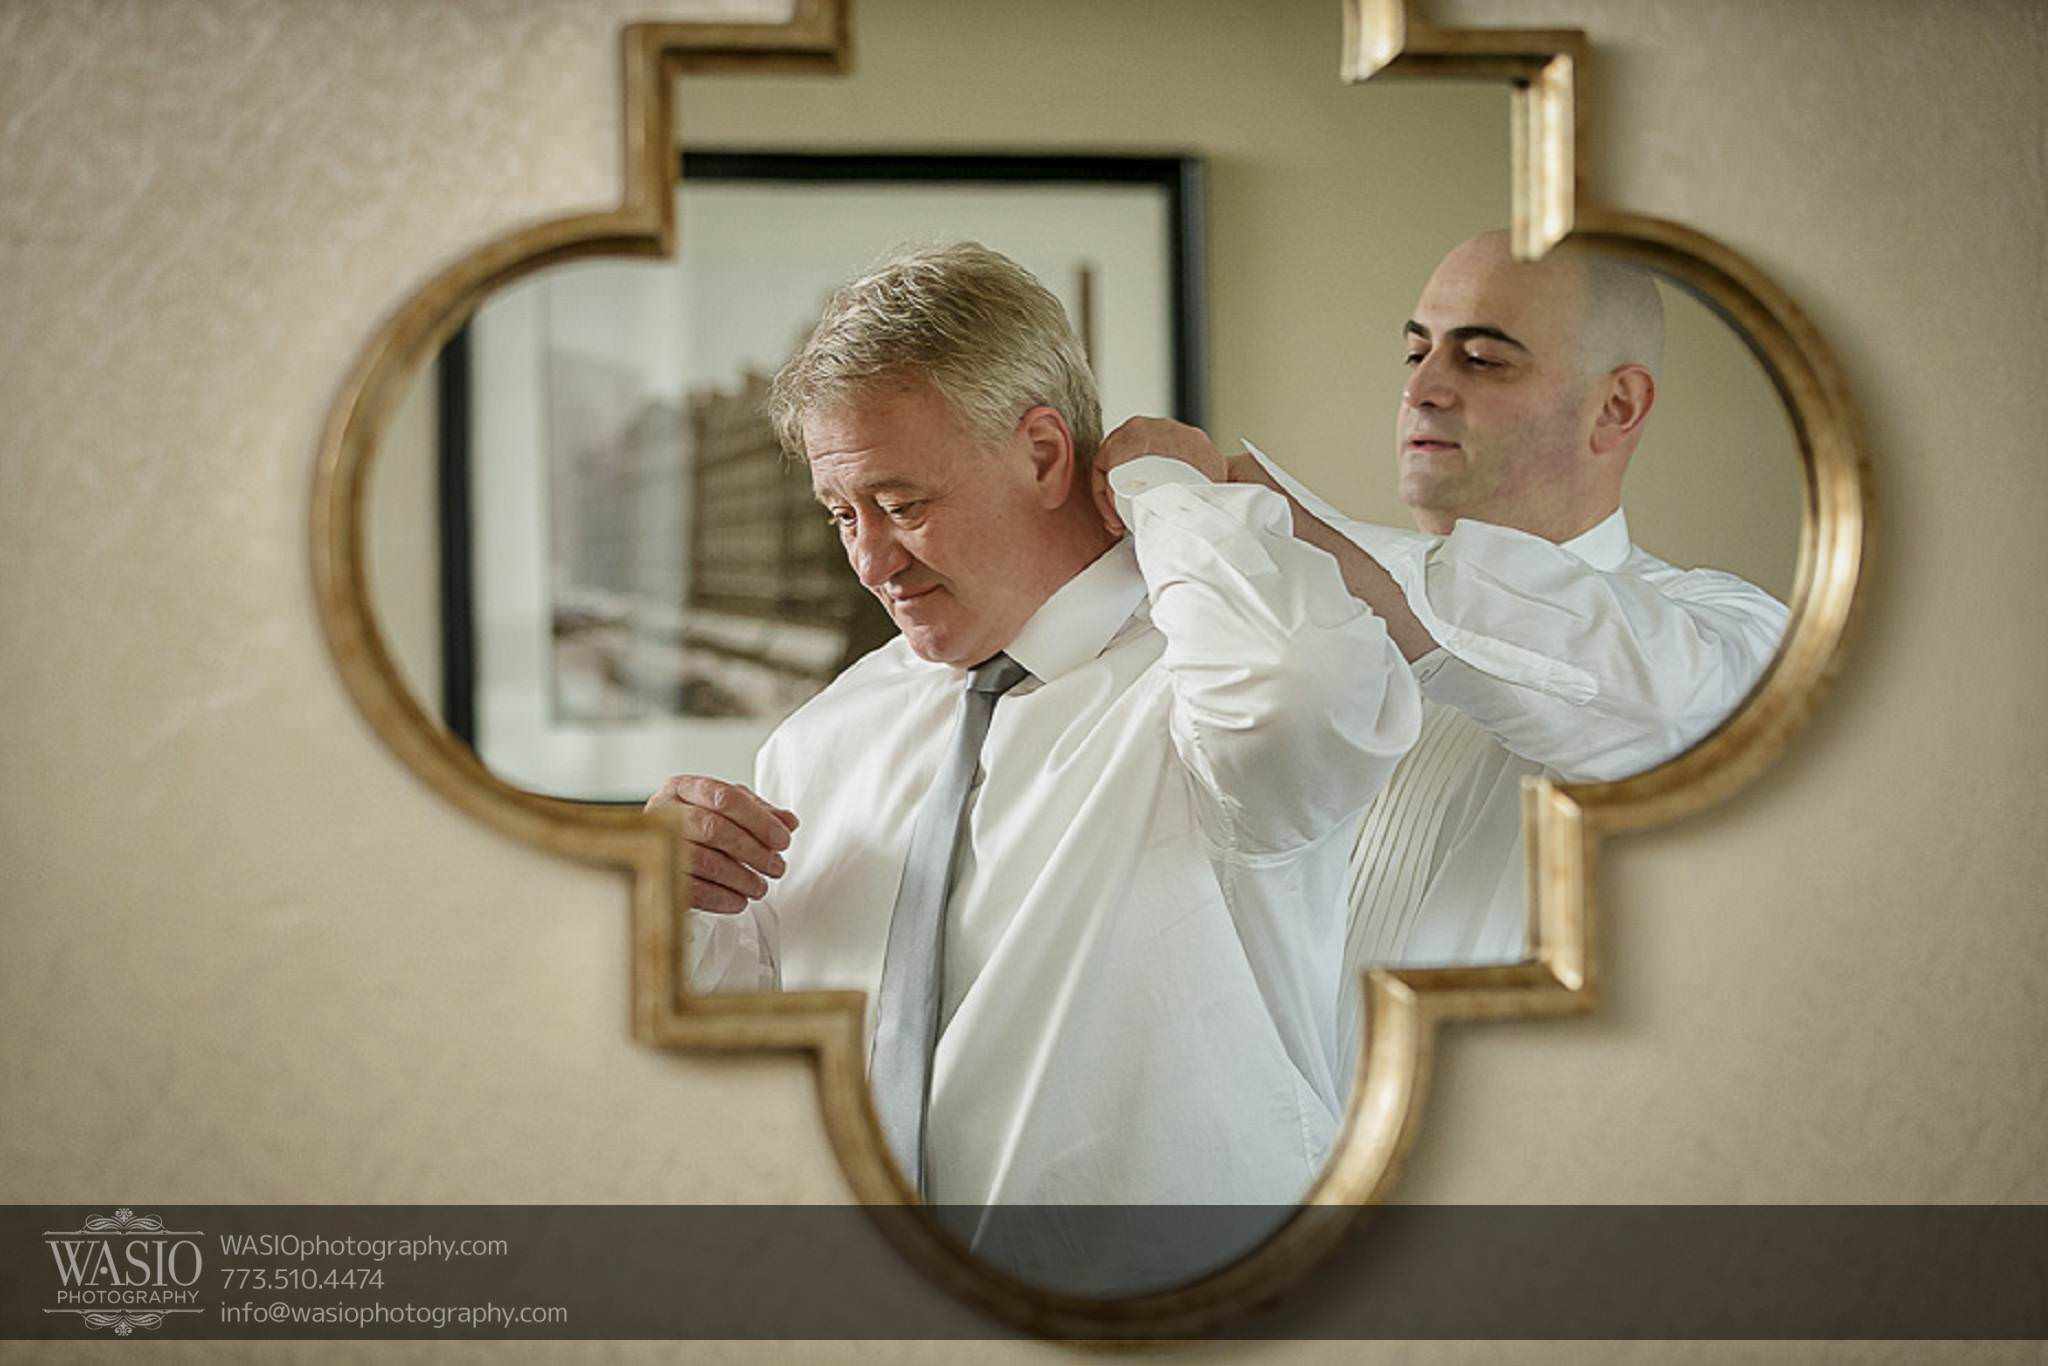 Chicago-wedding-photos-father-of-bride-groom-preparation-golden-mirror-036 Chicago Wedding Photos - Svetlana + Yuriy